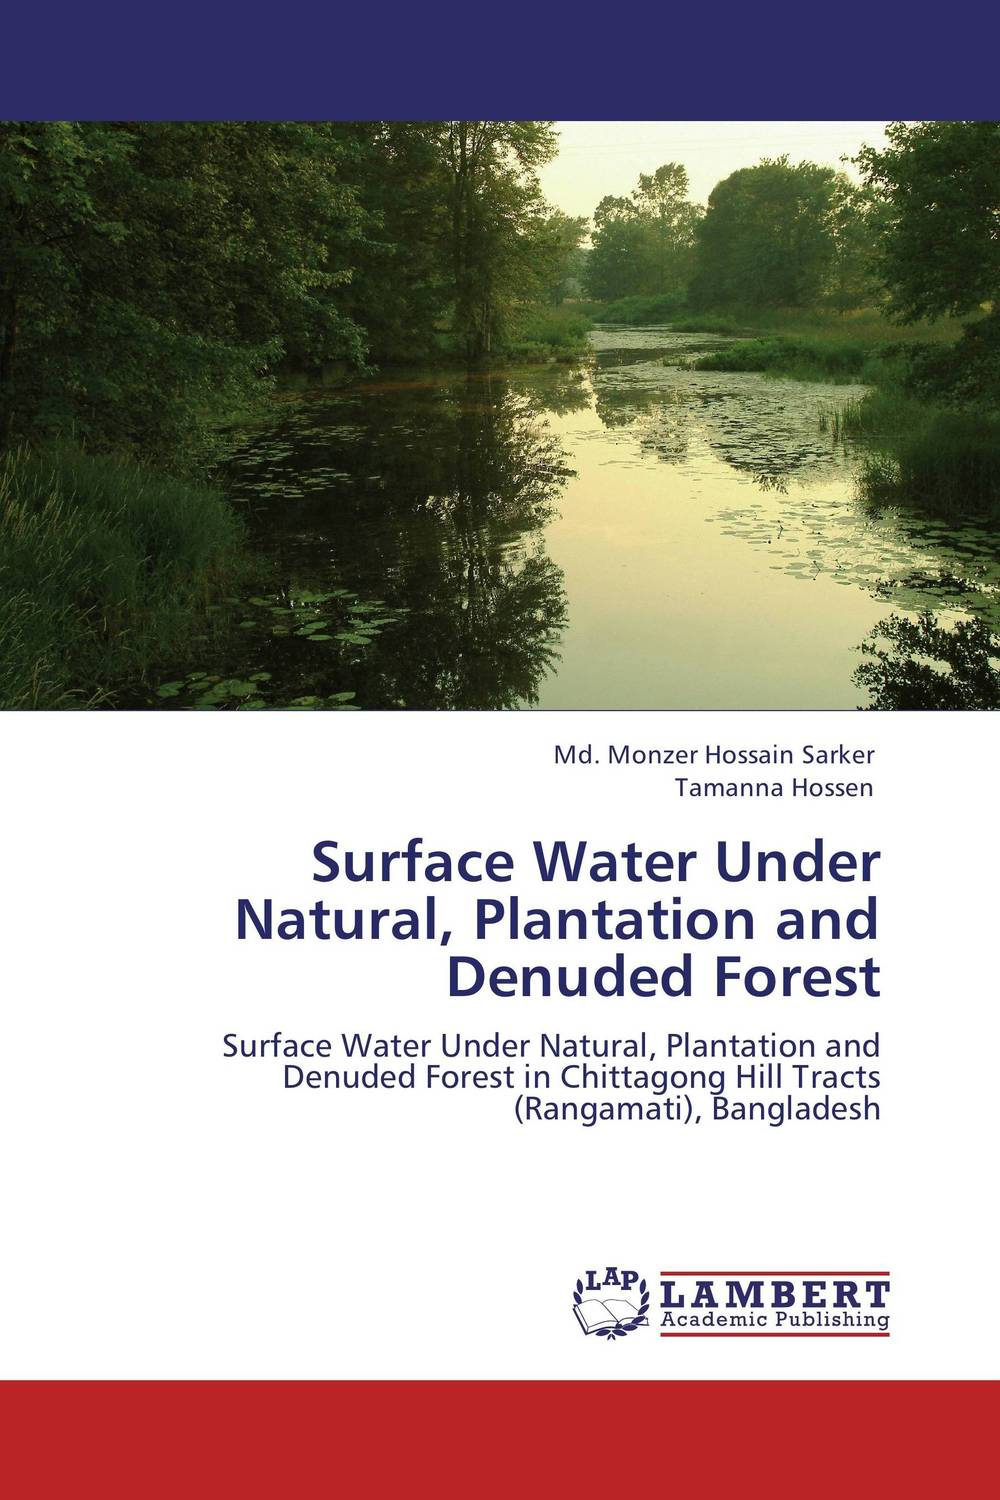 Surface Water Under Natural, Plantation and Denuded Forest particle mixing and settling in reservoirs under natural convection